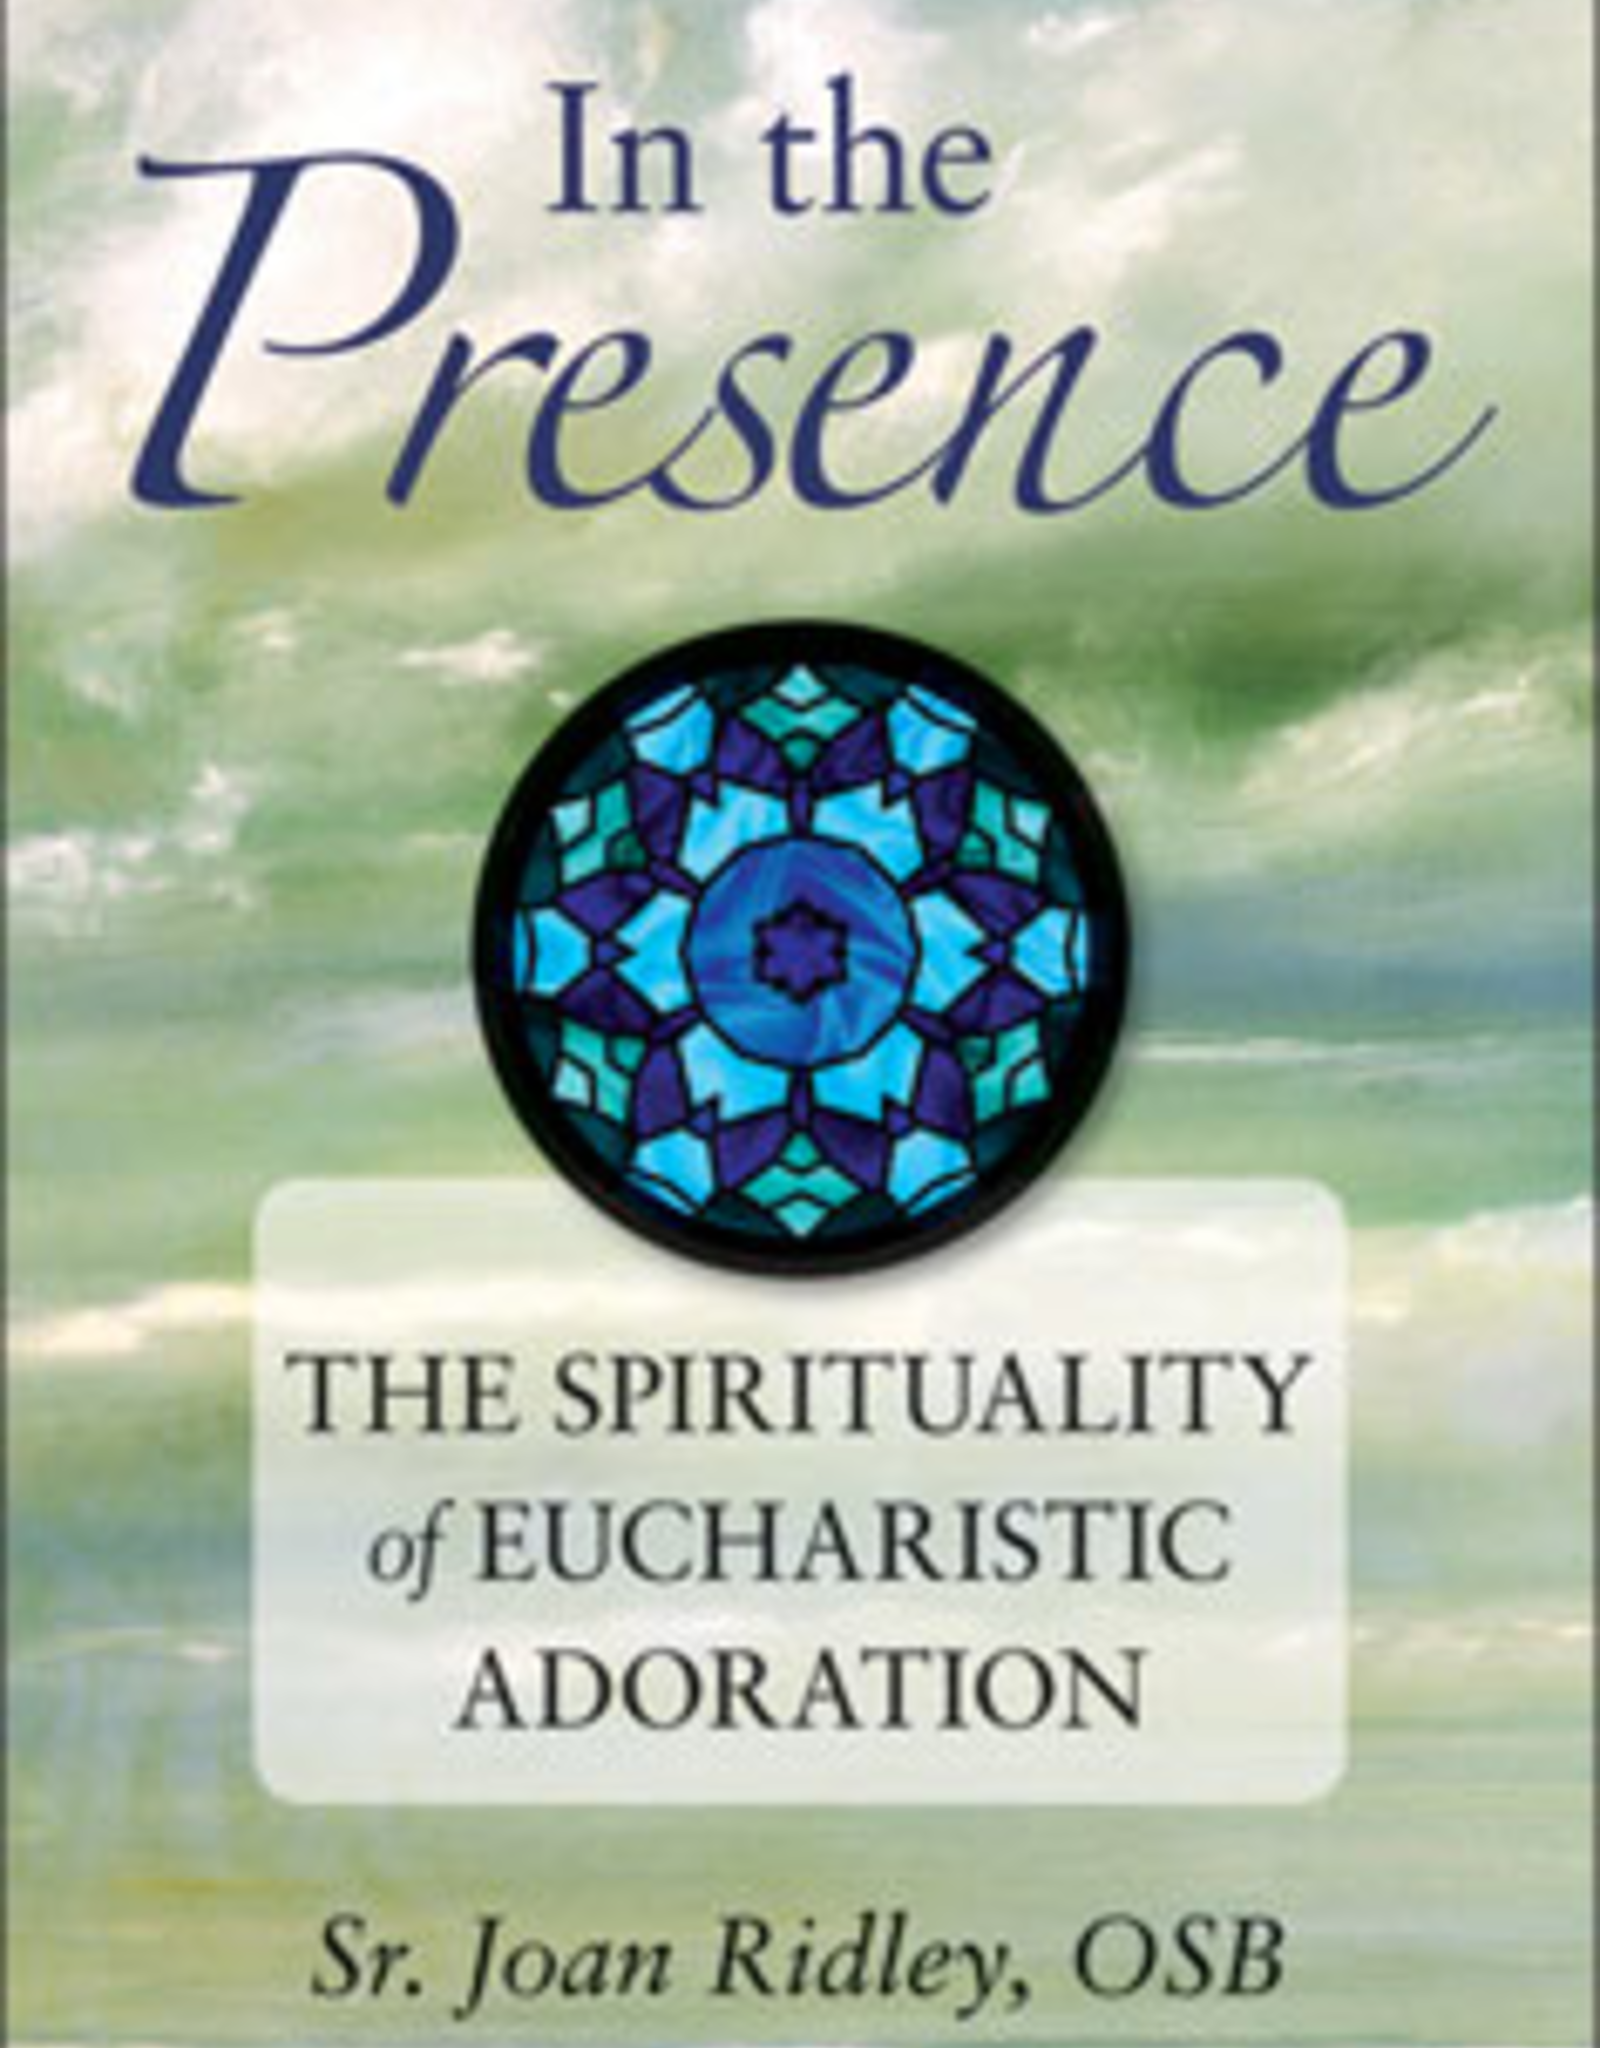 Liguori Press In the Presence: The Spirituality of Eucharistic Adoration, by Sr Joan Ridley (paperback)